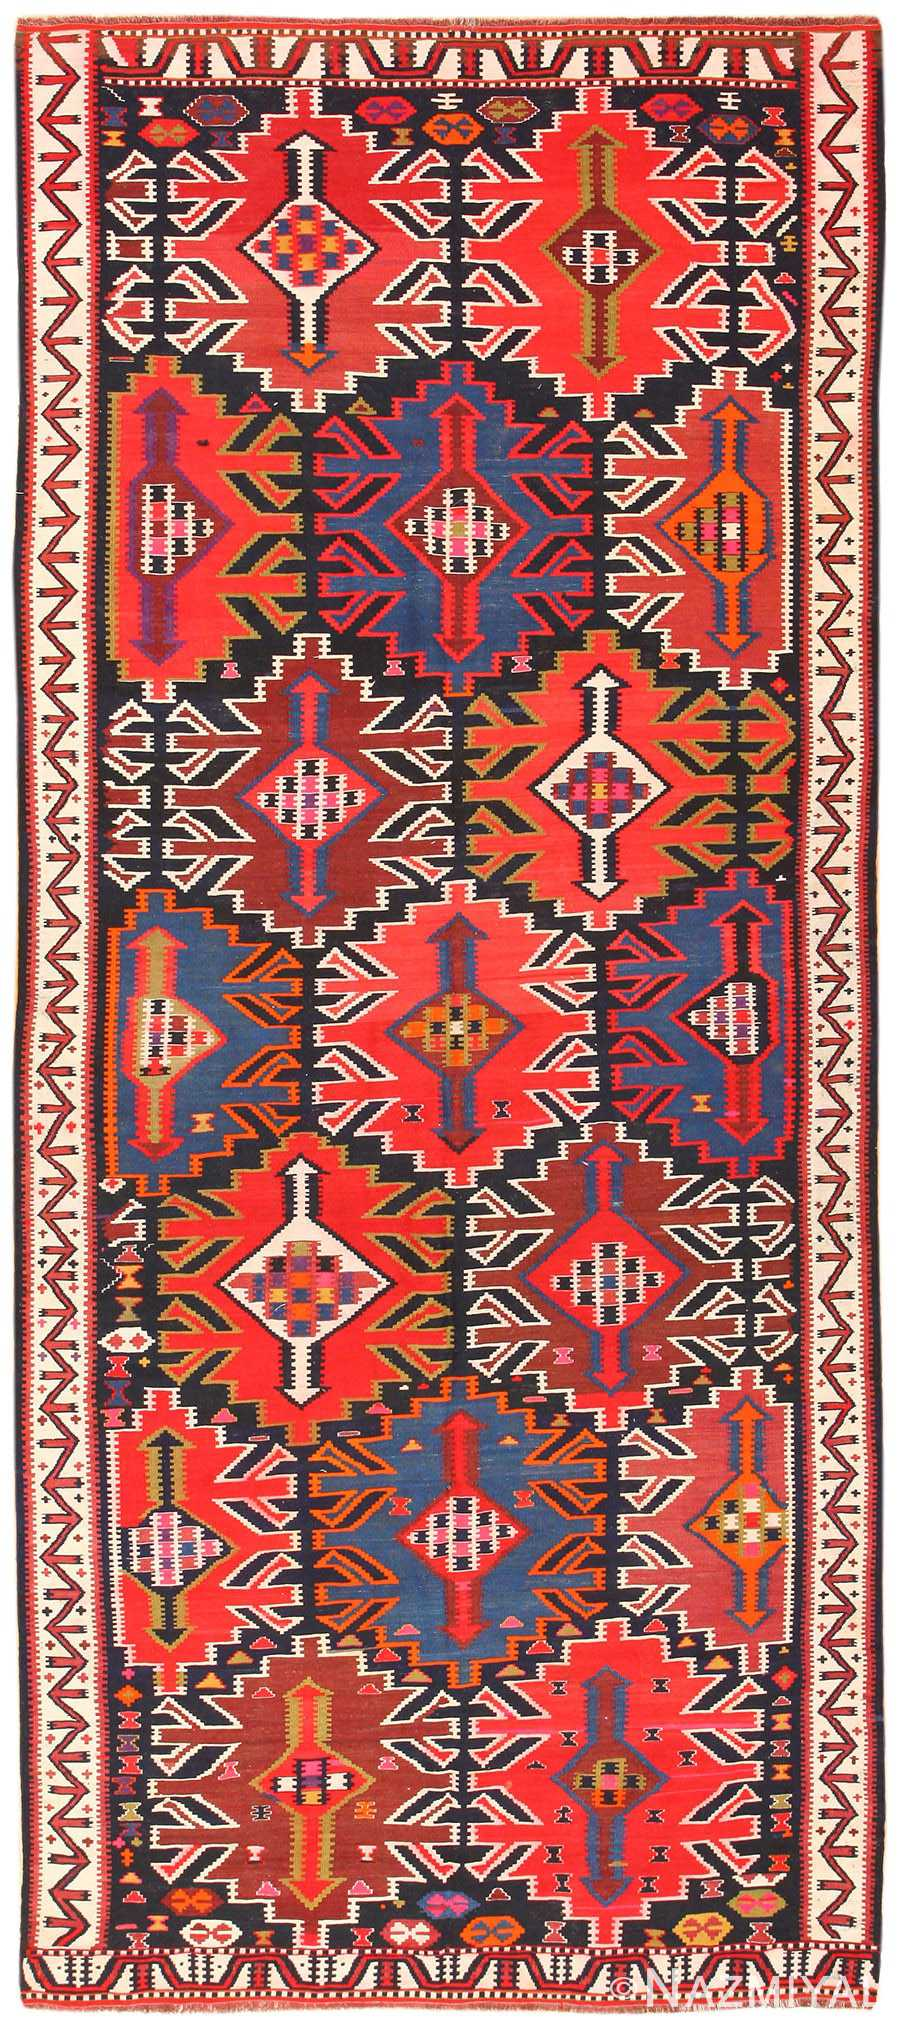 Vintage Turkish Kilim Rug 50421 Detail/Large View